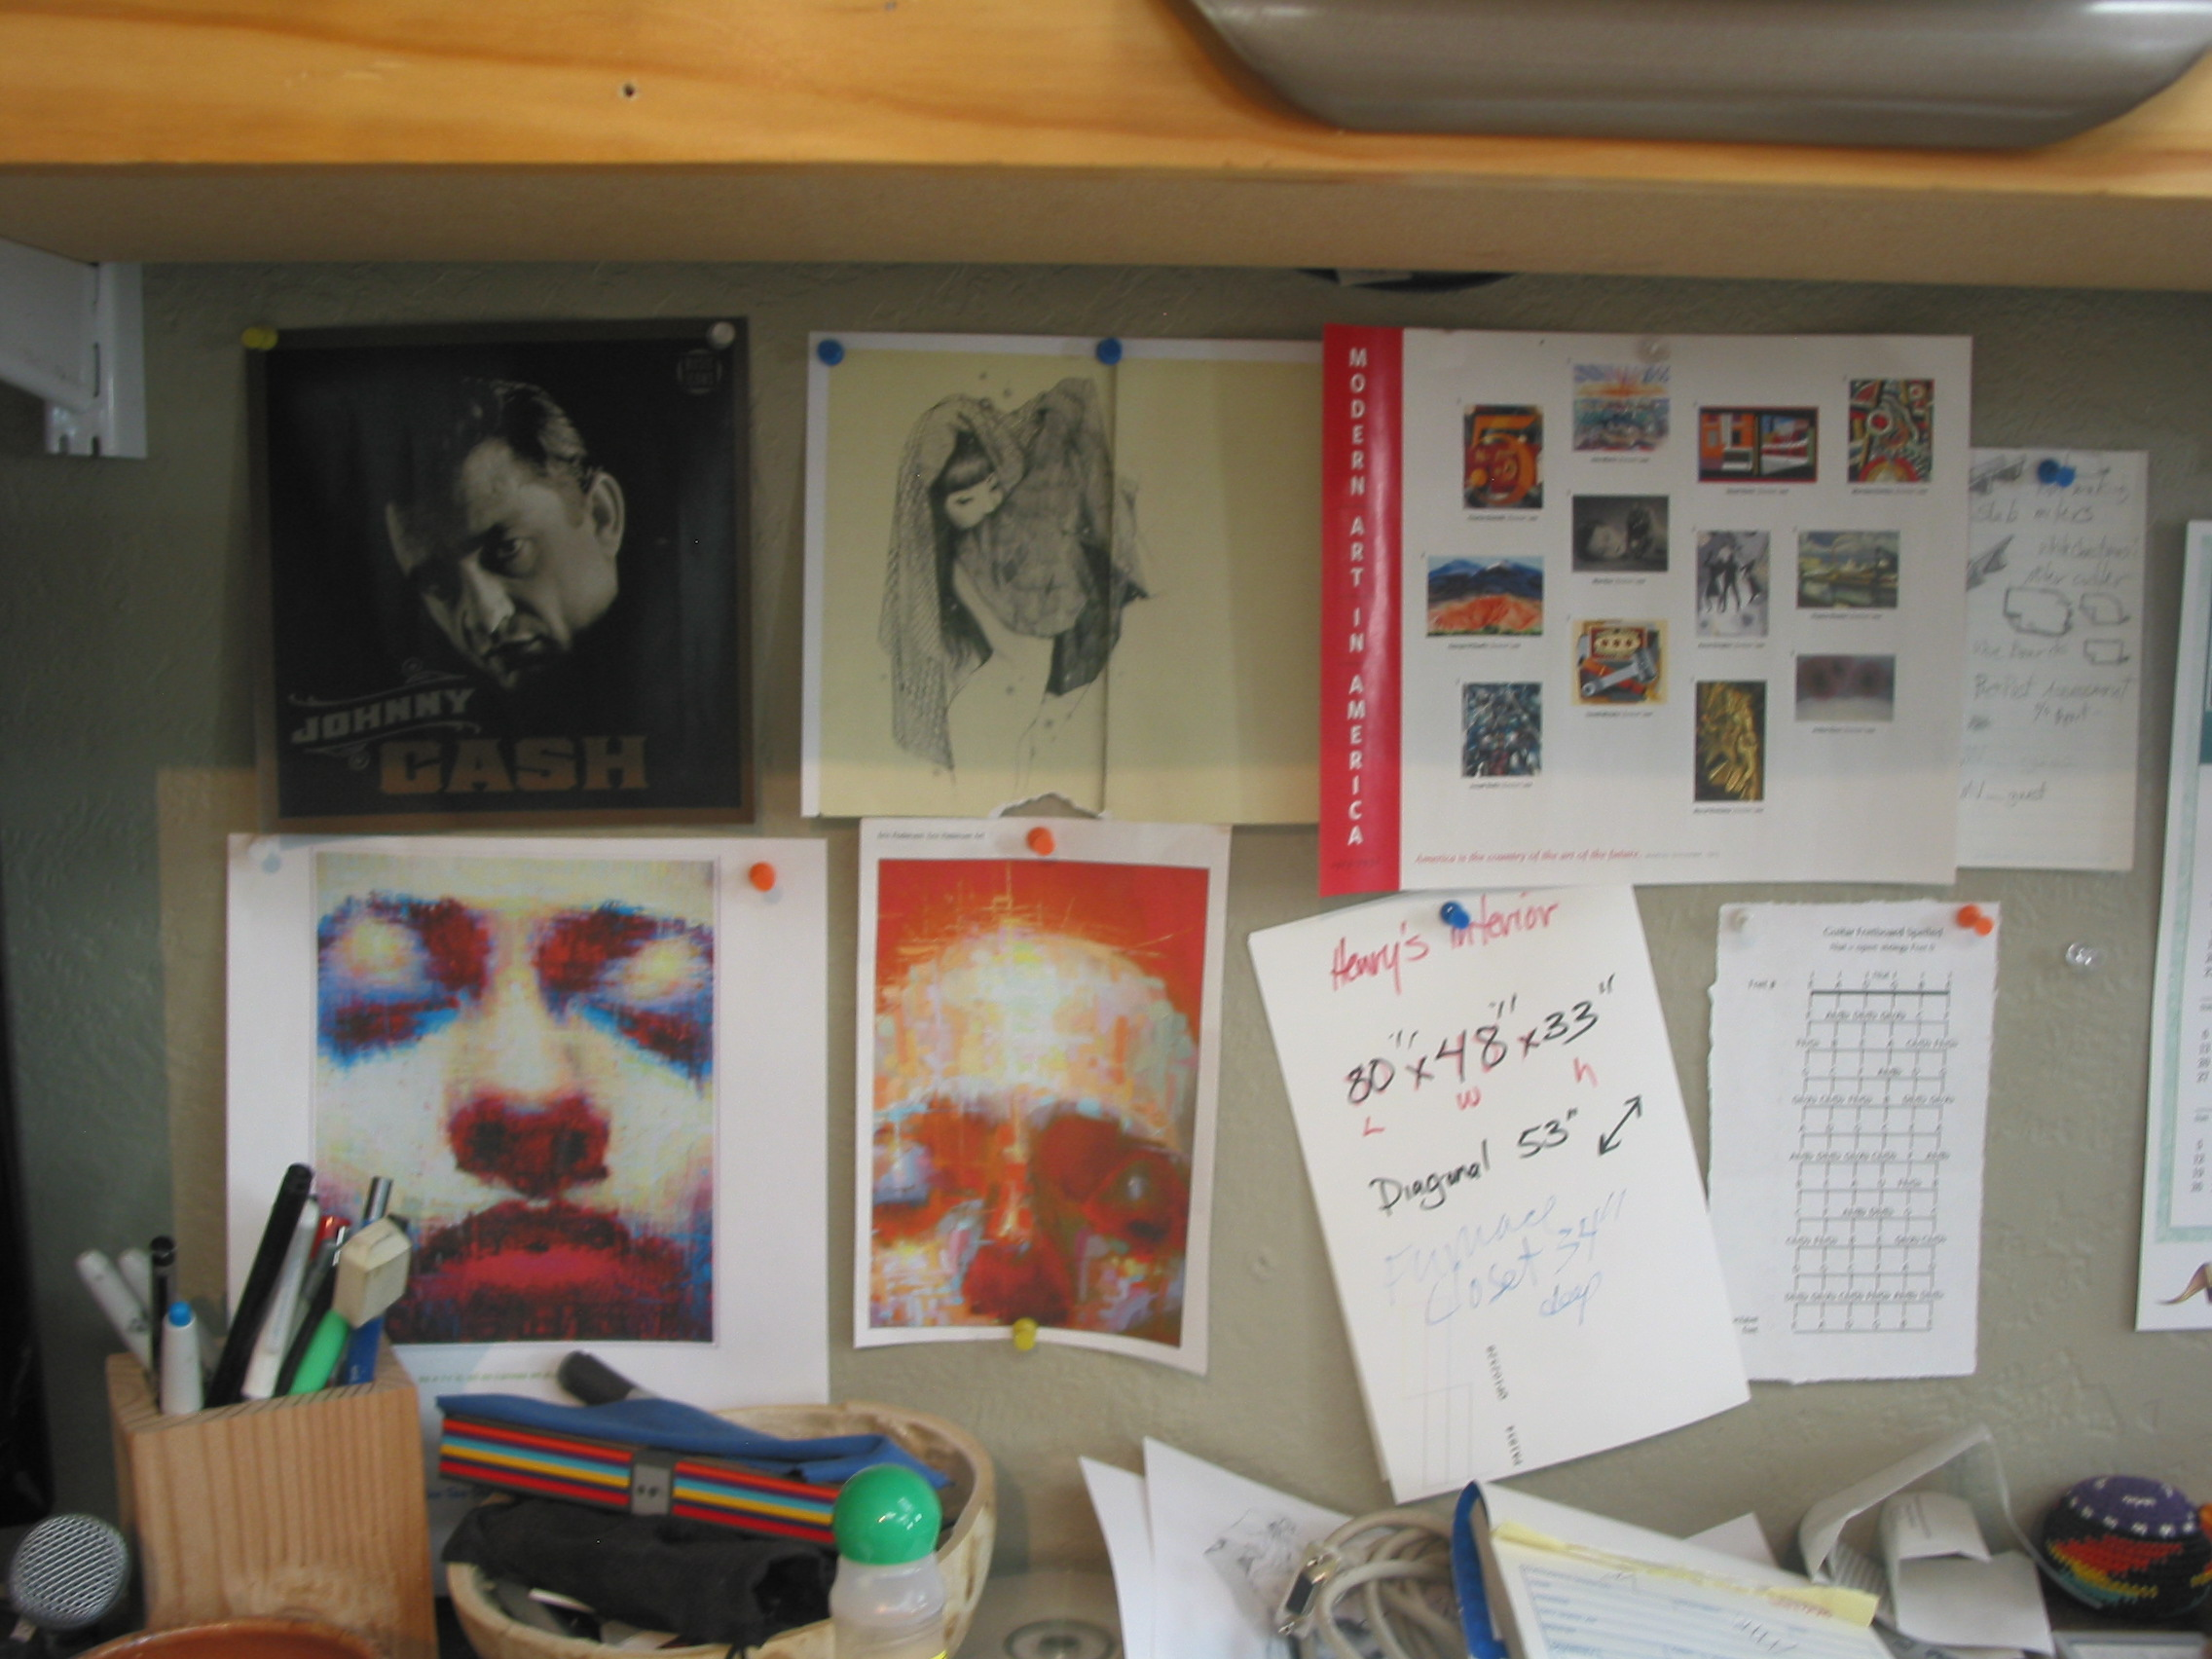 Some picts above my desk. There is a picture of Johnny Cash, two images by Eric Pederson, a stamp set of American Modern Art, notes and a fret chart.